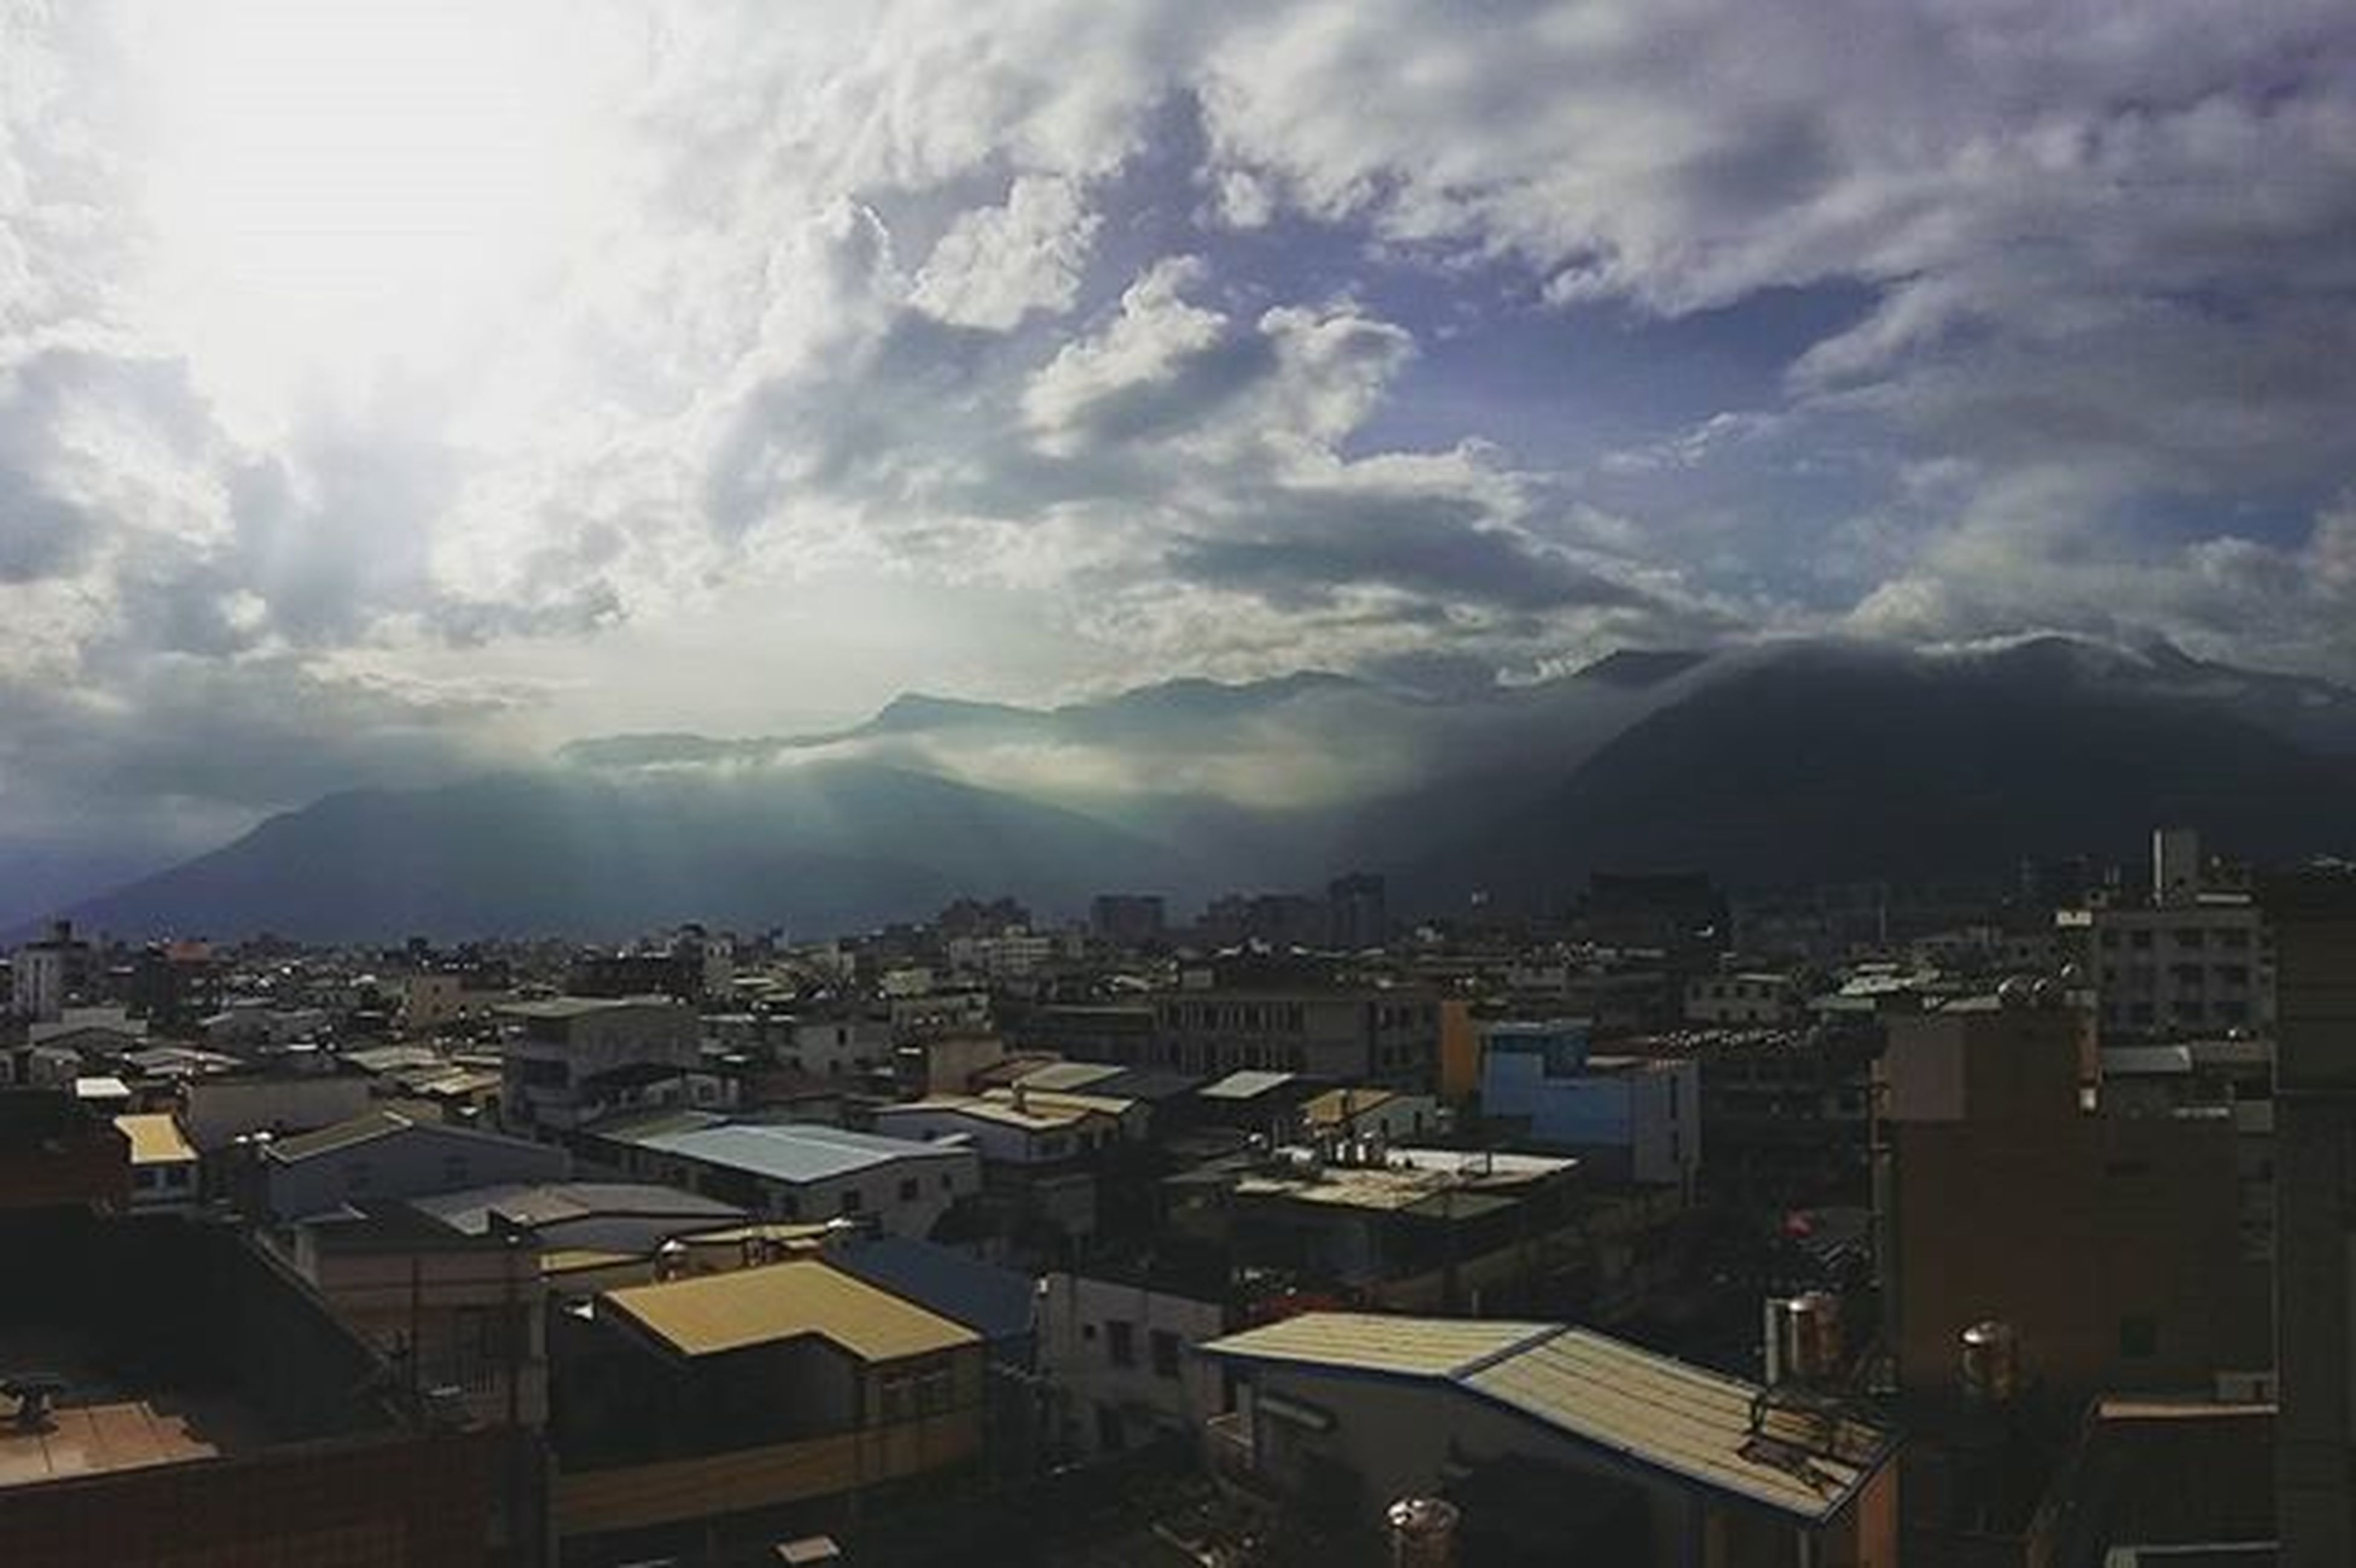 building exterior, architecture, built structure, sky, cityscape, cloud - sky, residential district, city, residential structure, residential building, mountain, high angle view, house, crowded, town, cloudy, townscape, cloud, weather, community